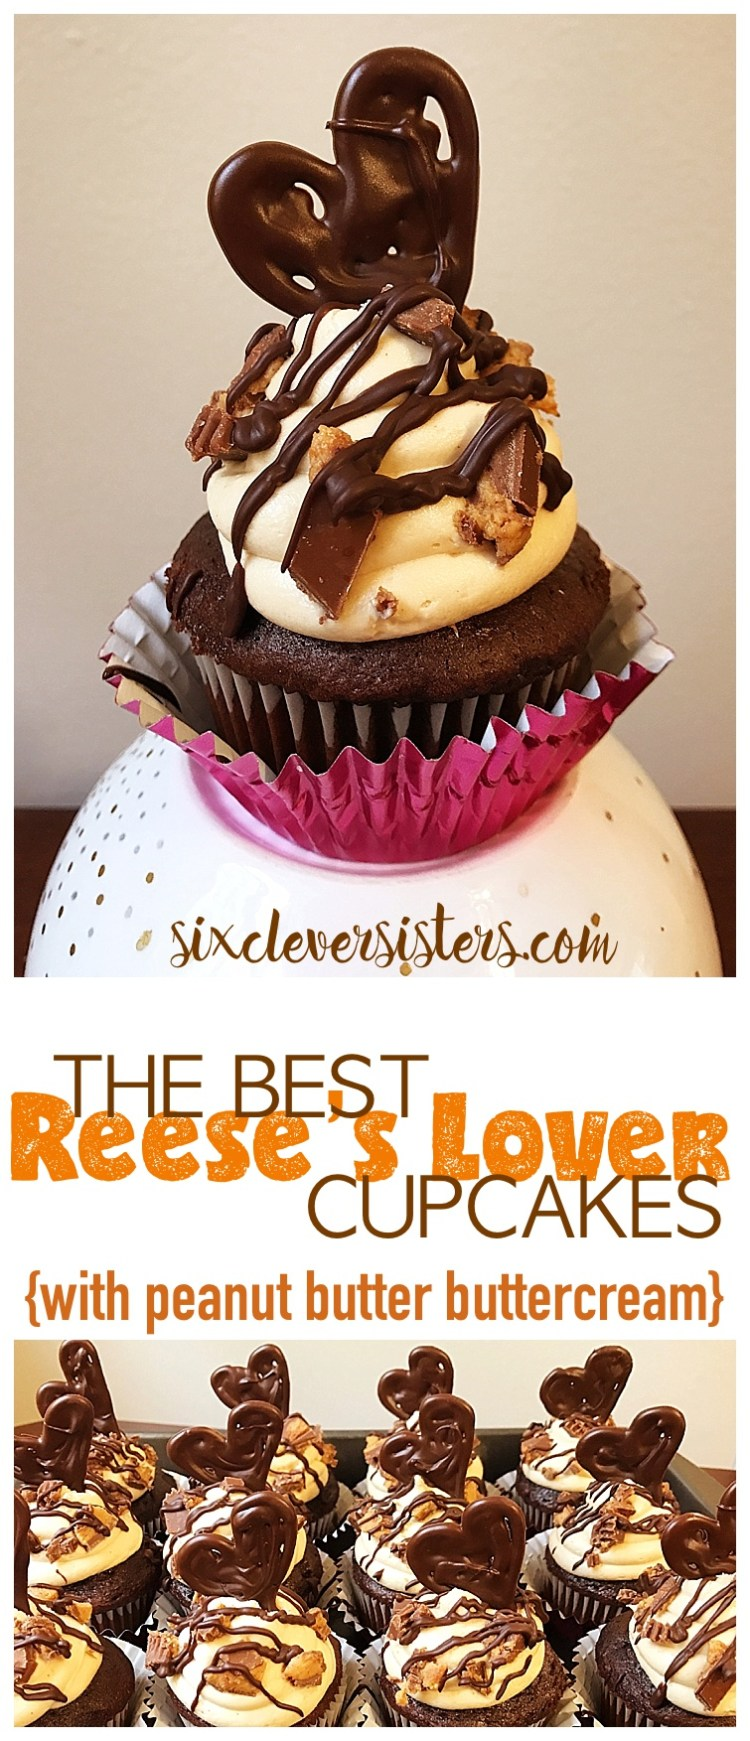 The Best Reese's Lover Cupcakes